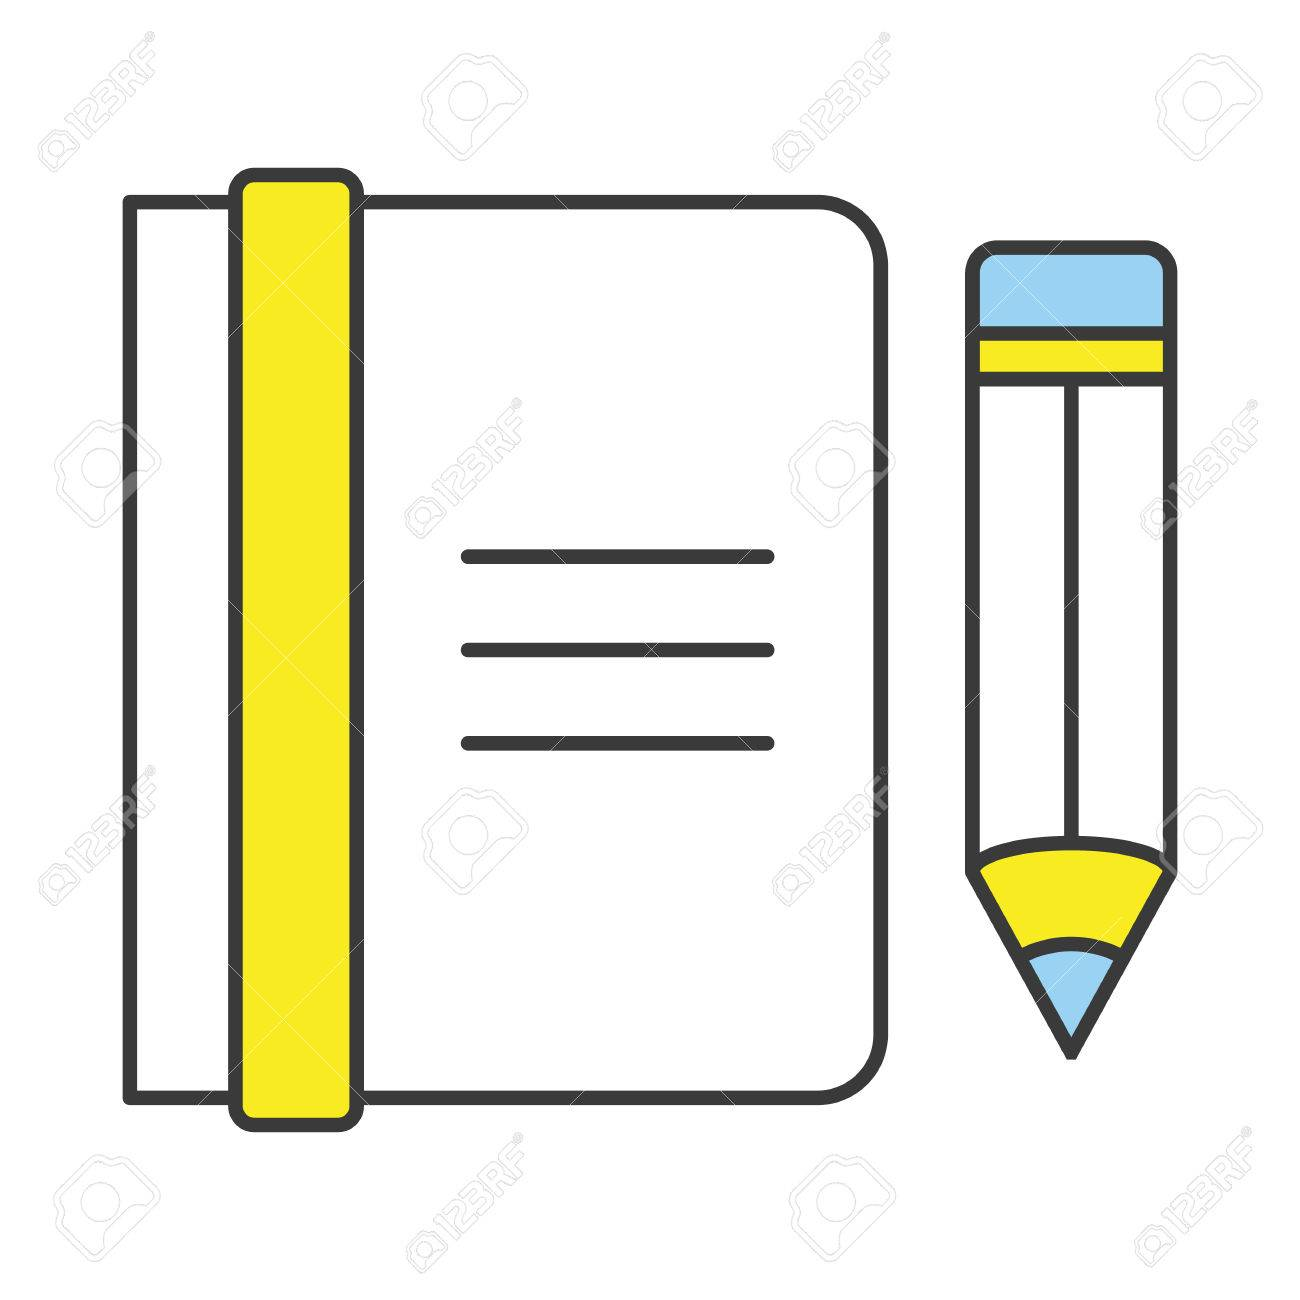 Vector Flat Line Design Concept Notebook and Pencil Icon Stock Vector - 30151615